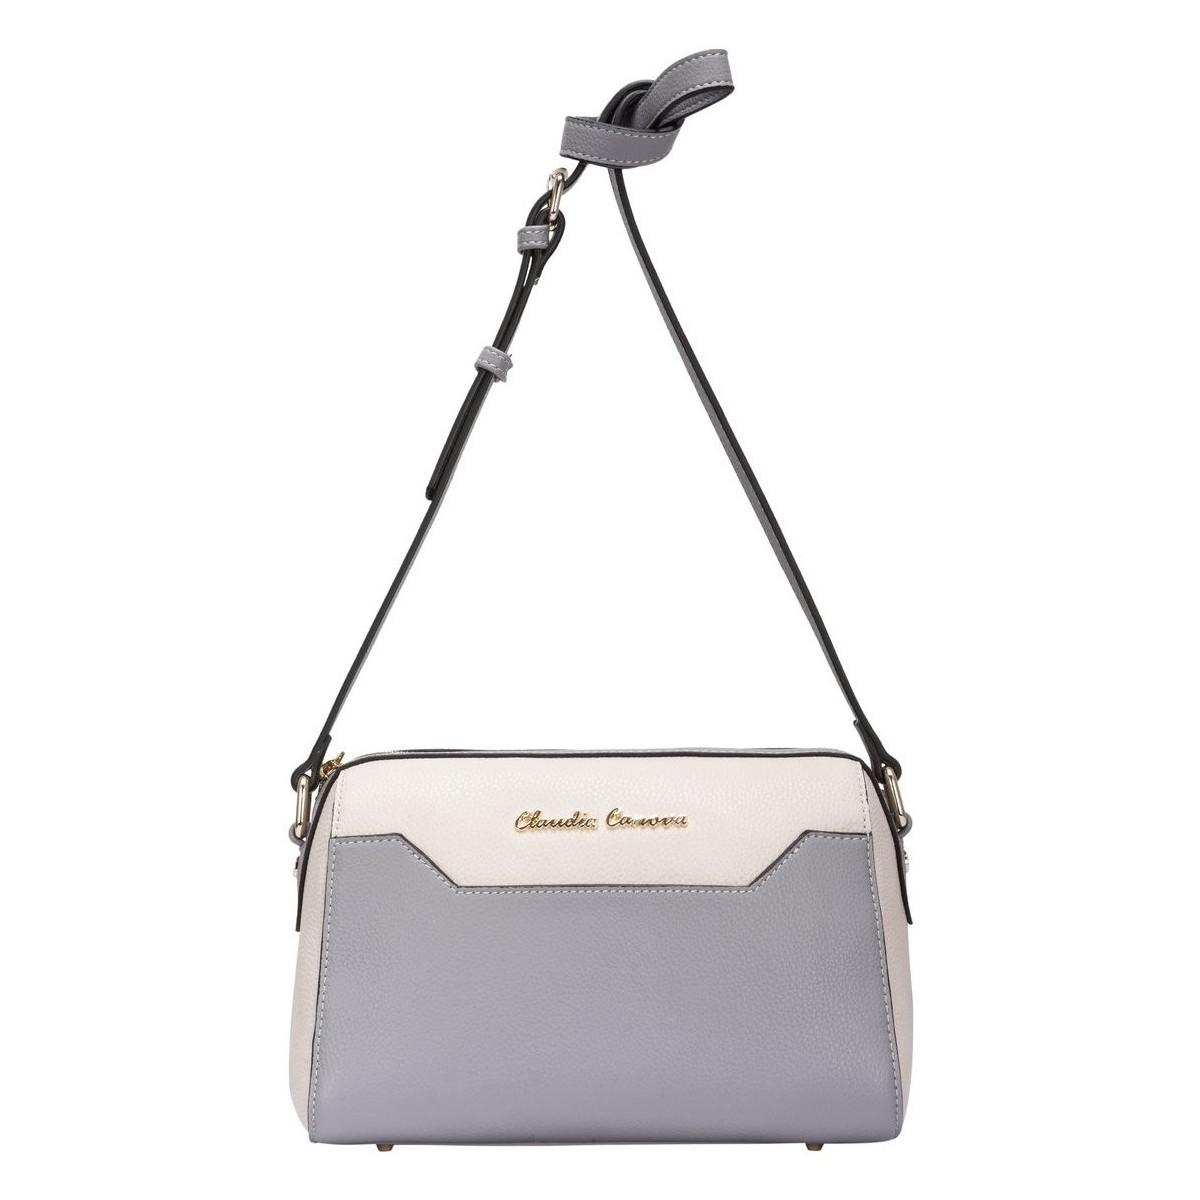 Claudia Canova Zip Top Cross Body Bag Women s Shoulder Bag In Grey ... daec0a76ec3f8